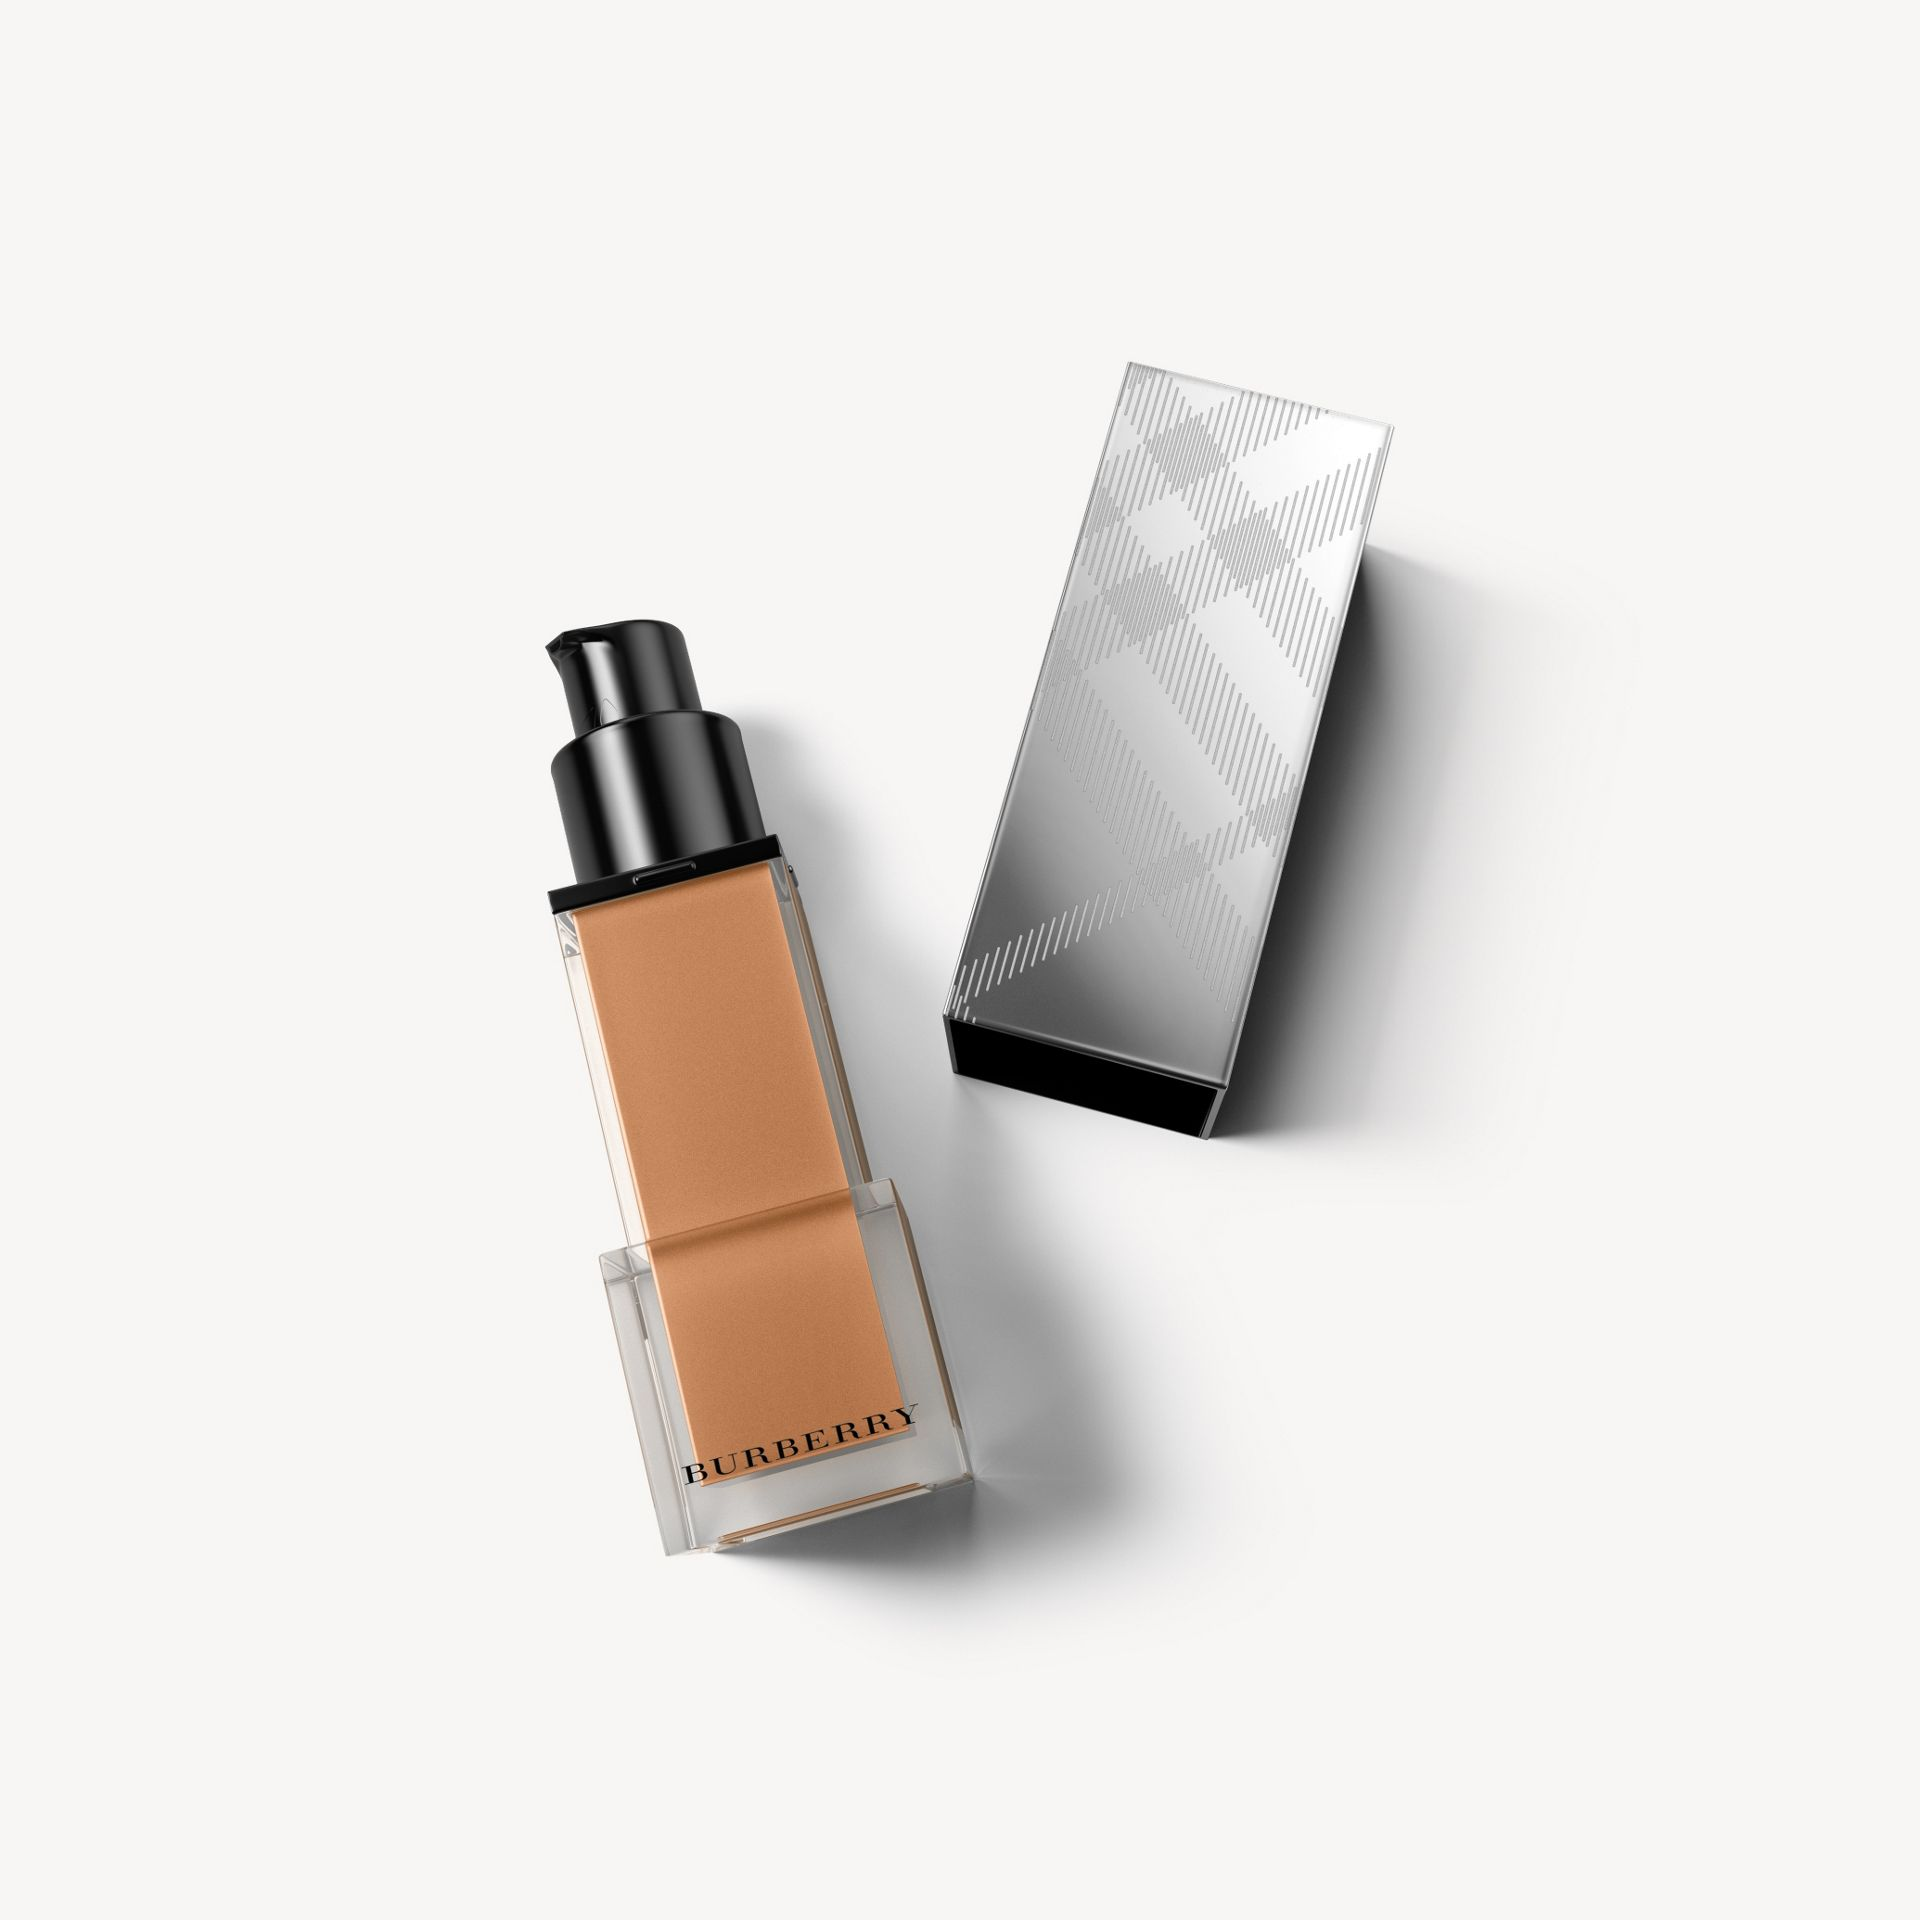 Dark sable 36 Fresh Glow Foundation SPF 15 PA+++ - Dark Sable No.36 - immagine della galleria 1